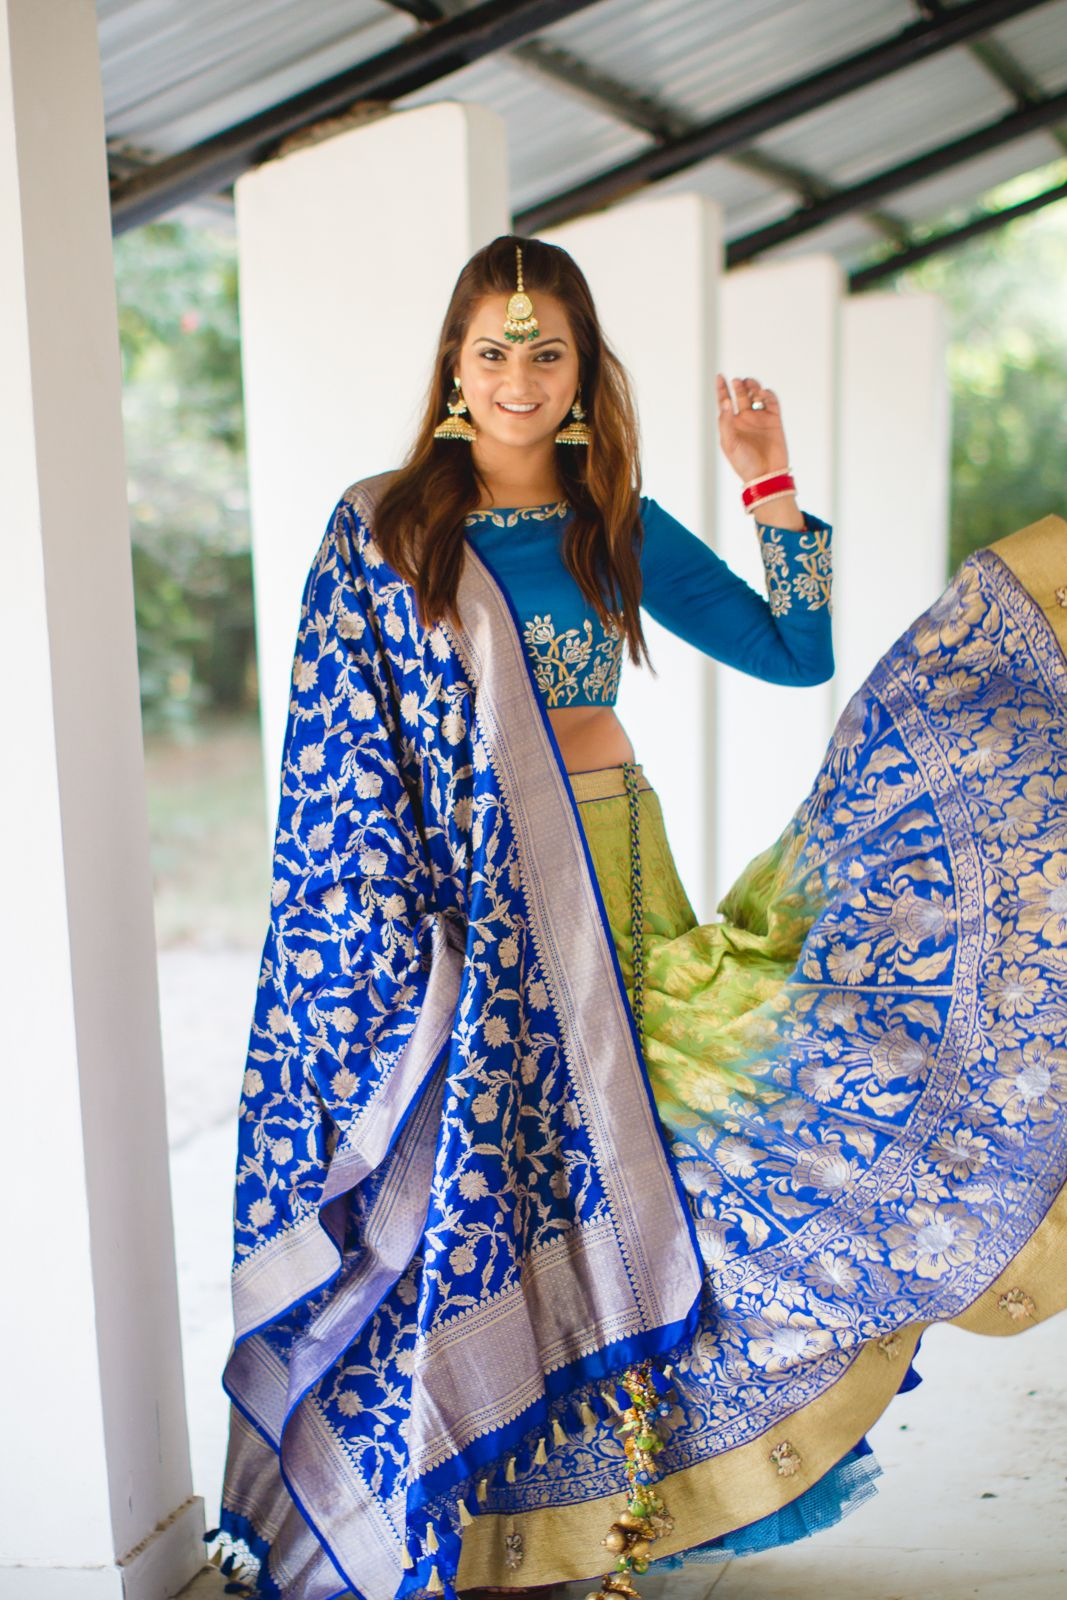 Since I Love The Kimono Style Dresses I Ve Seen On: Guilty Bytes: Indian Fashion Blogger